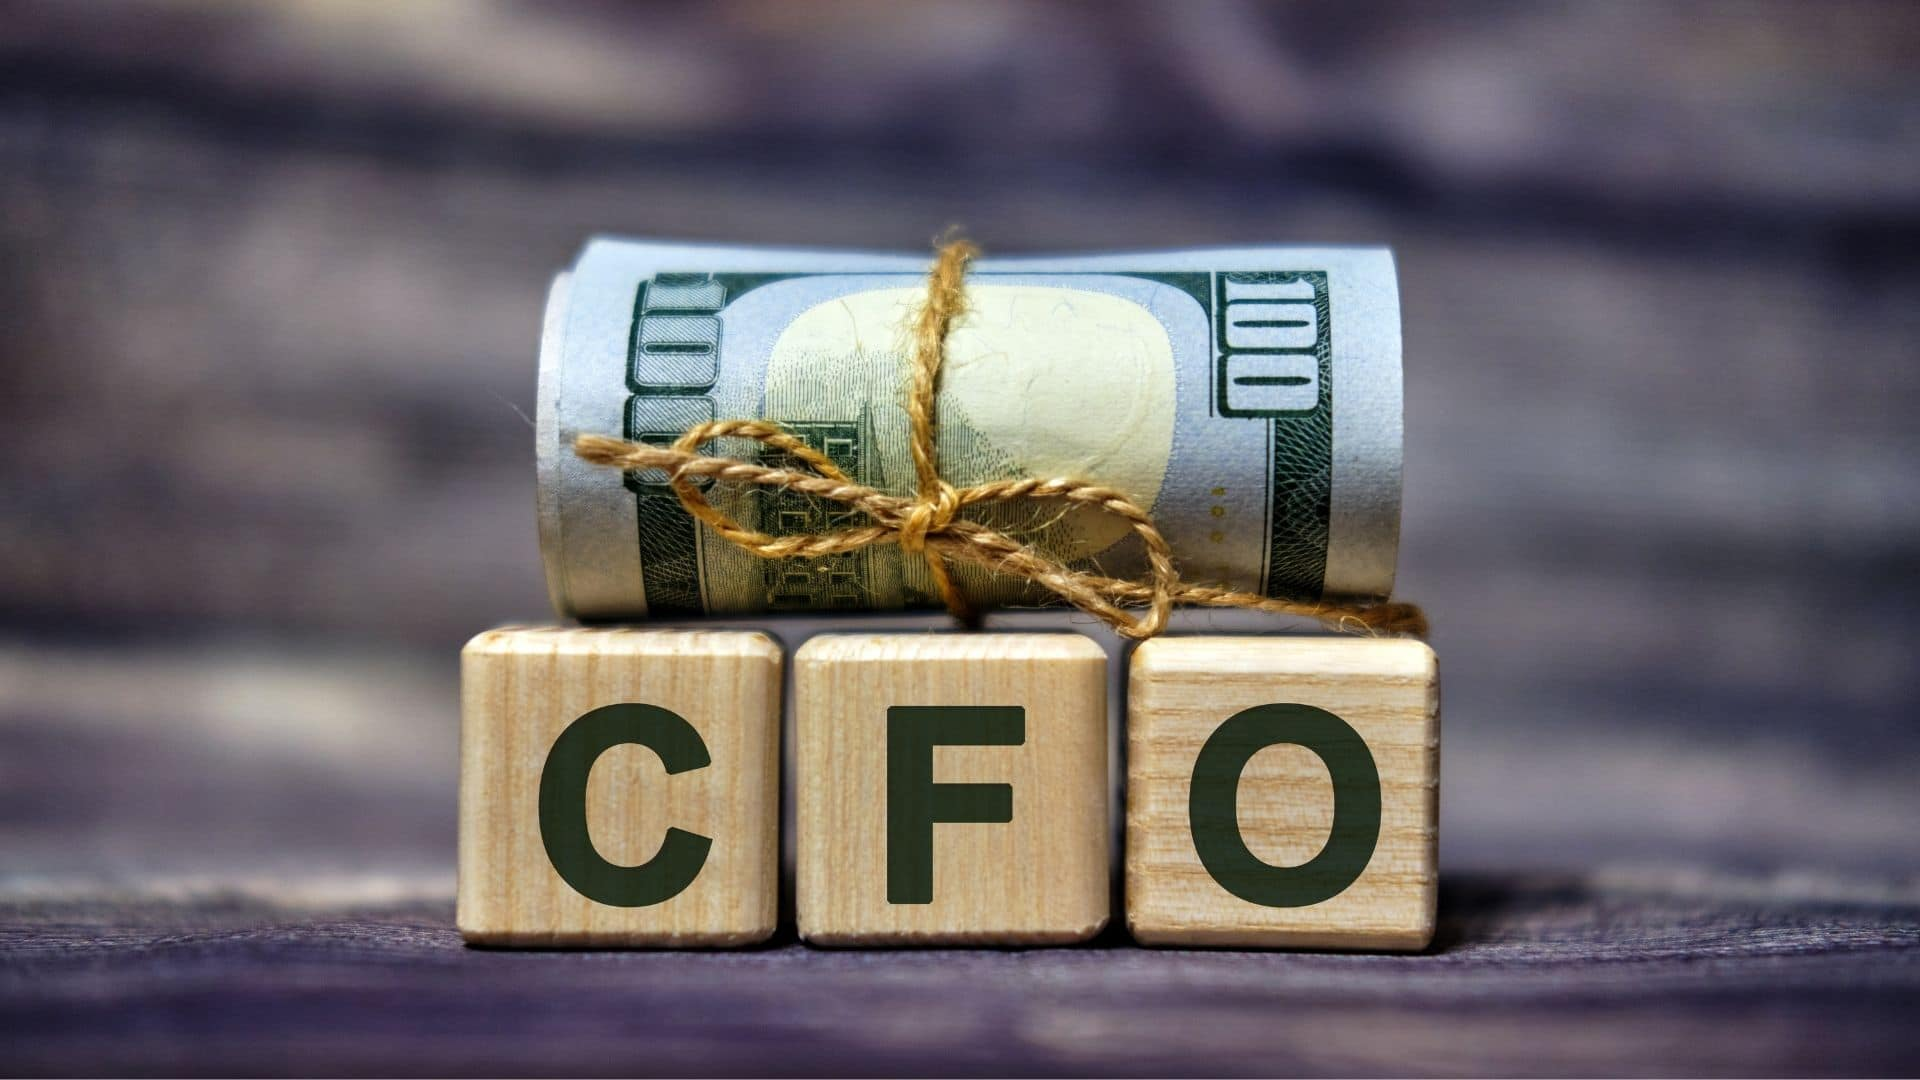 money on CFO blocks